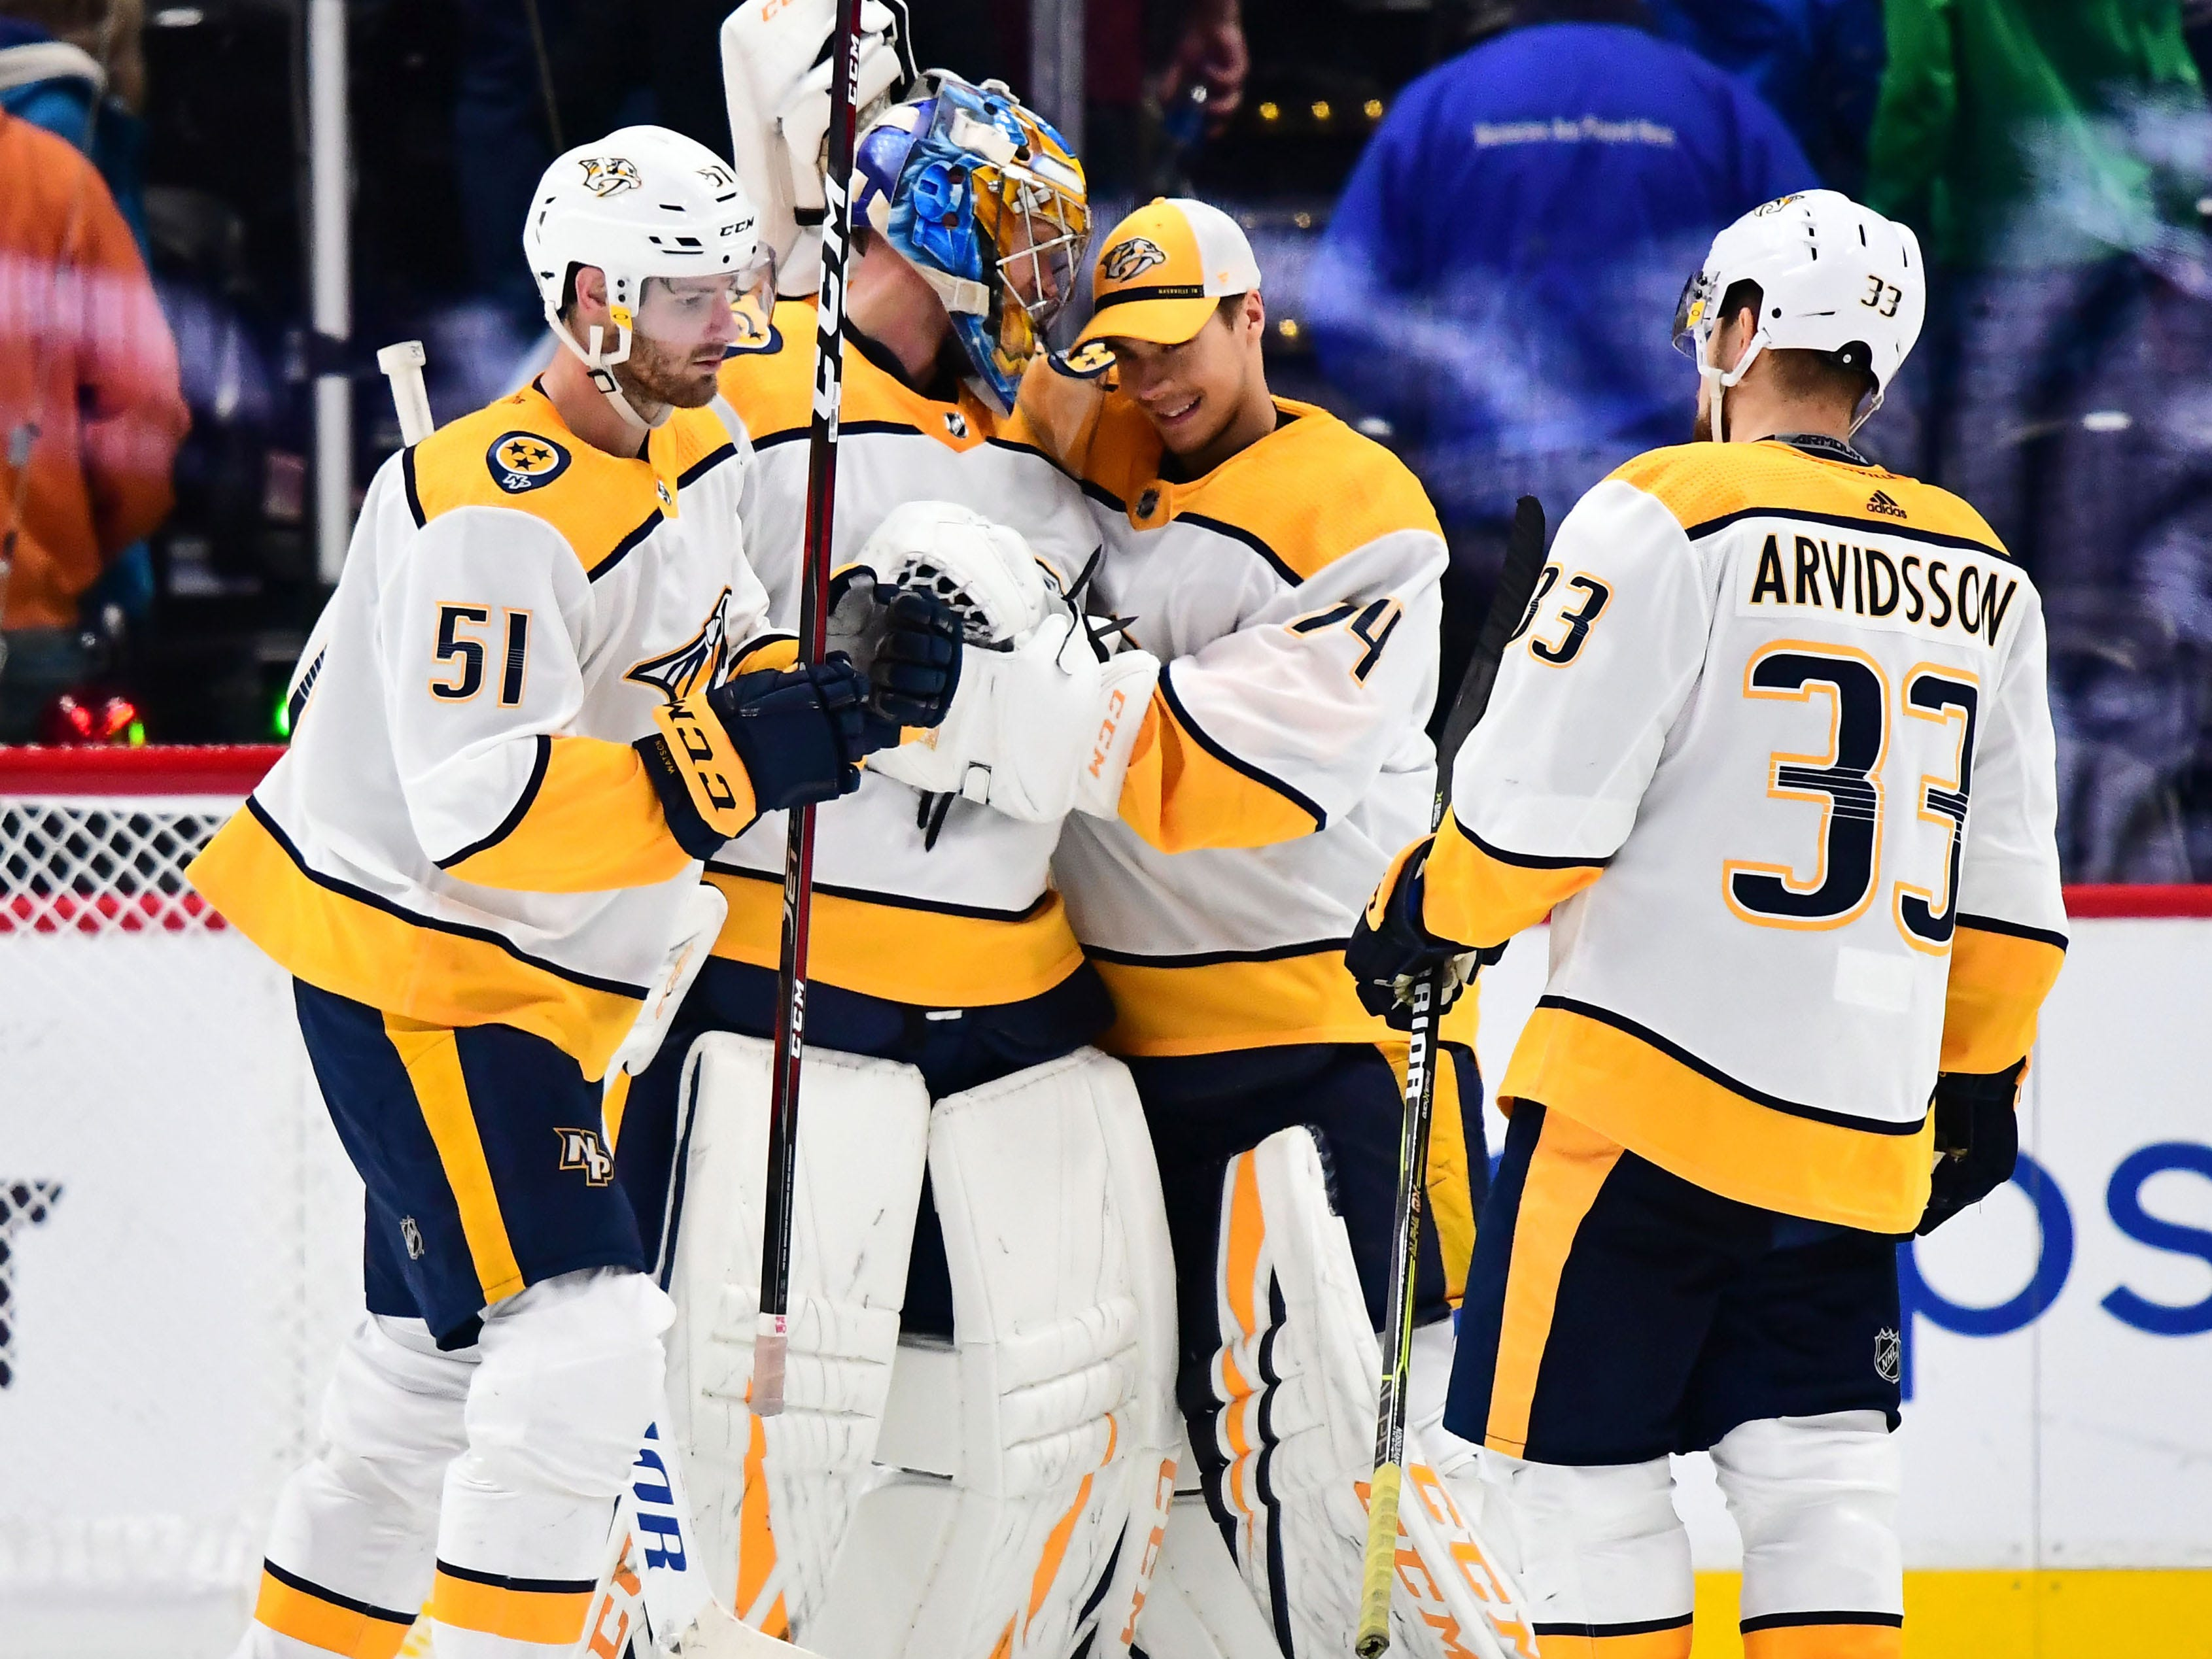 Nashville Predators left wing Austin Watson (51) goaltender Pekka Rinne (35) goaltender Juuse Saros (74) and right wing Viktor Arvidsson (33) celebrate the win over the Colorado Avalanche at the Pepsi Center.